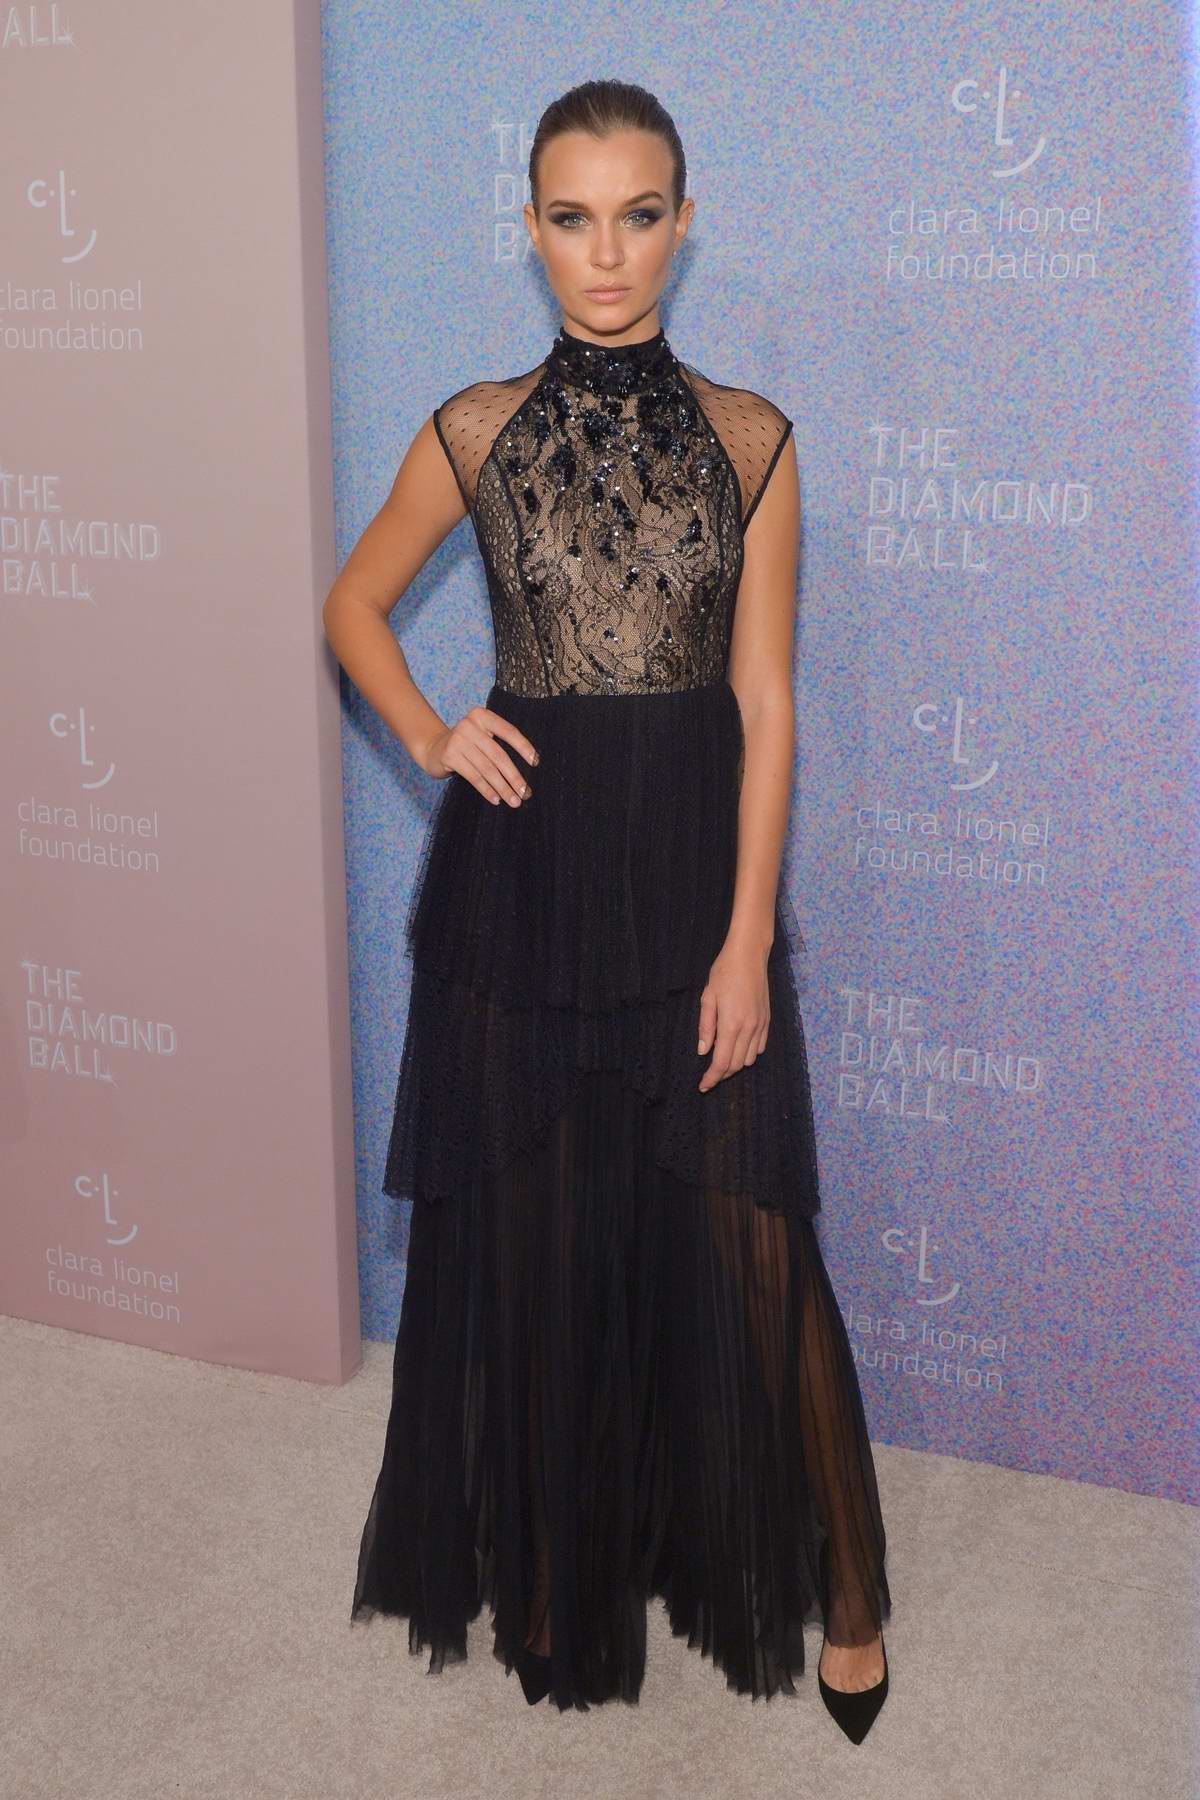 Josephine Skriver attends 4th Annual Clara Lionel Foundation Diamond Ball in New York City